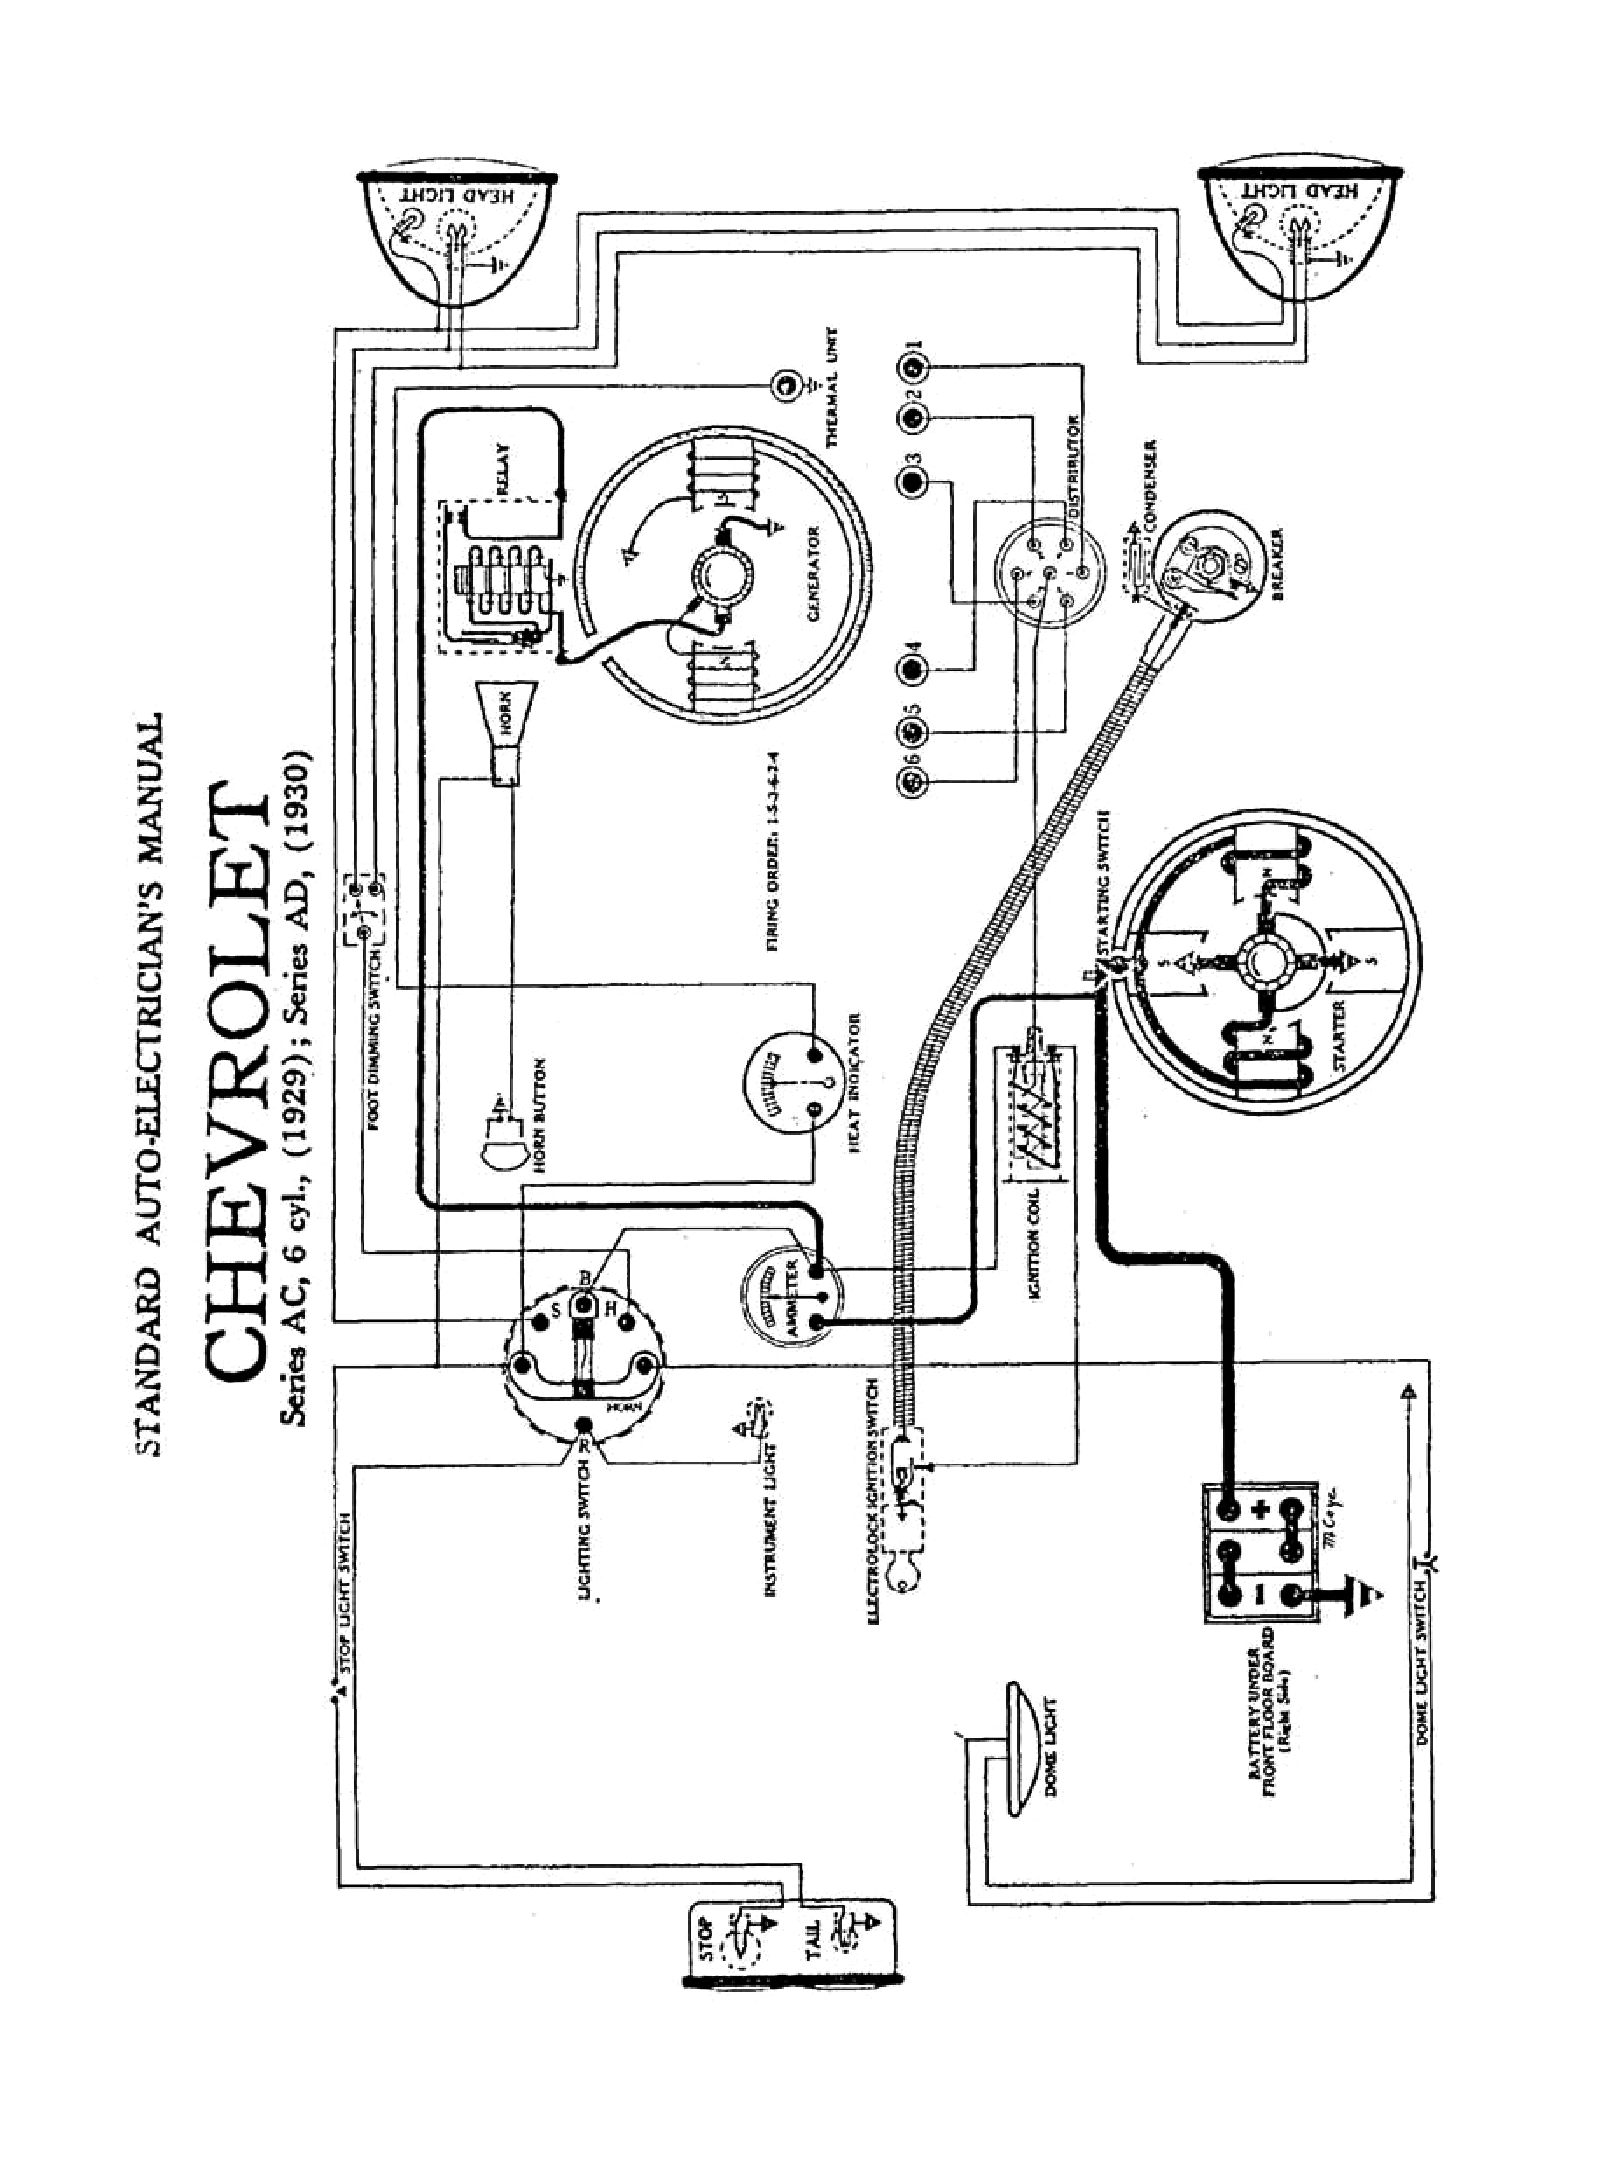 Chevy Generator Wiring Diagram Schematics Ohm 1955 Ford Electrical Diagrams Gas Gauge 1961